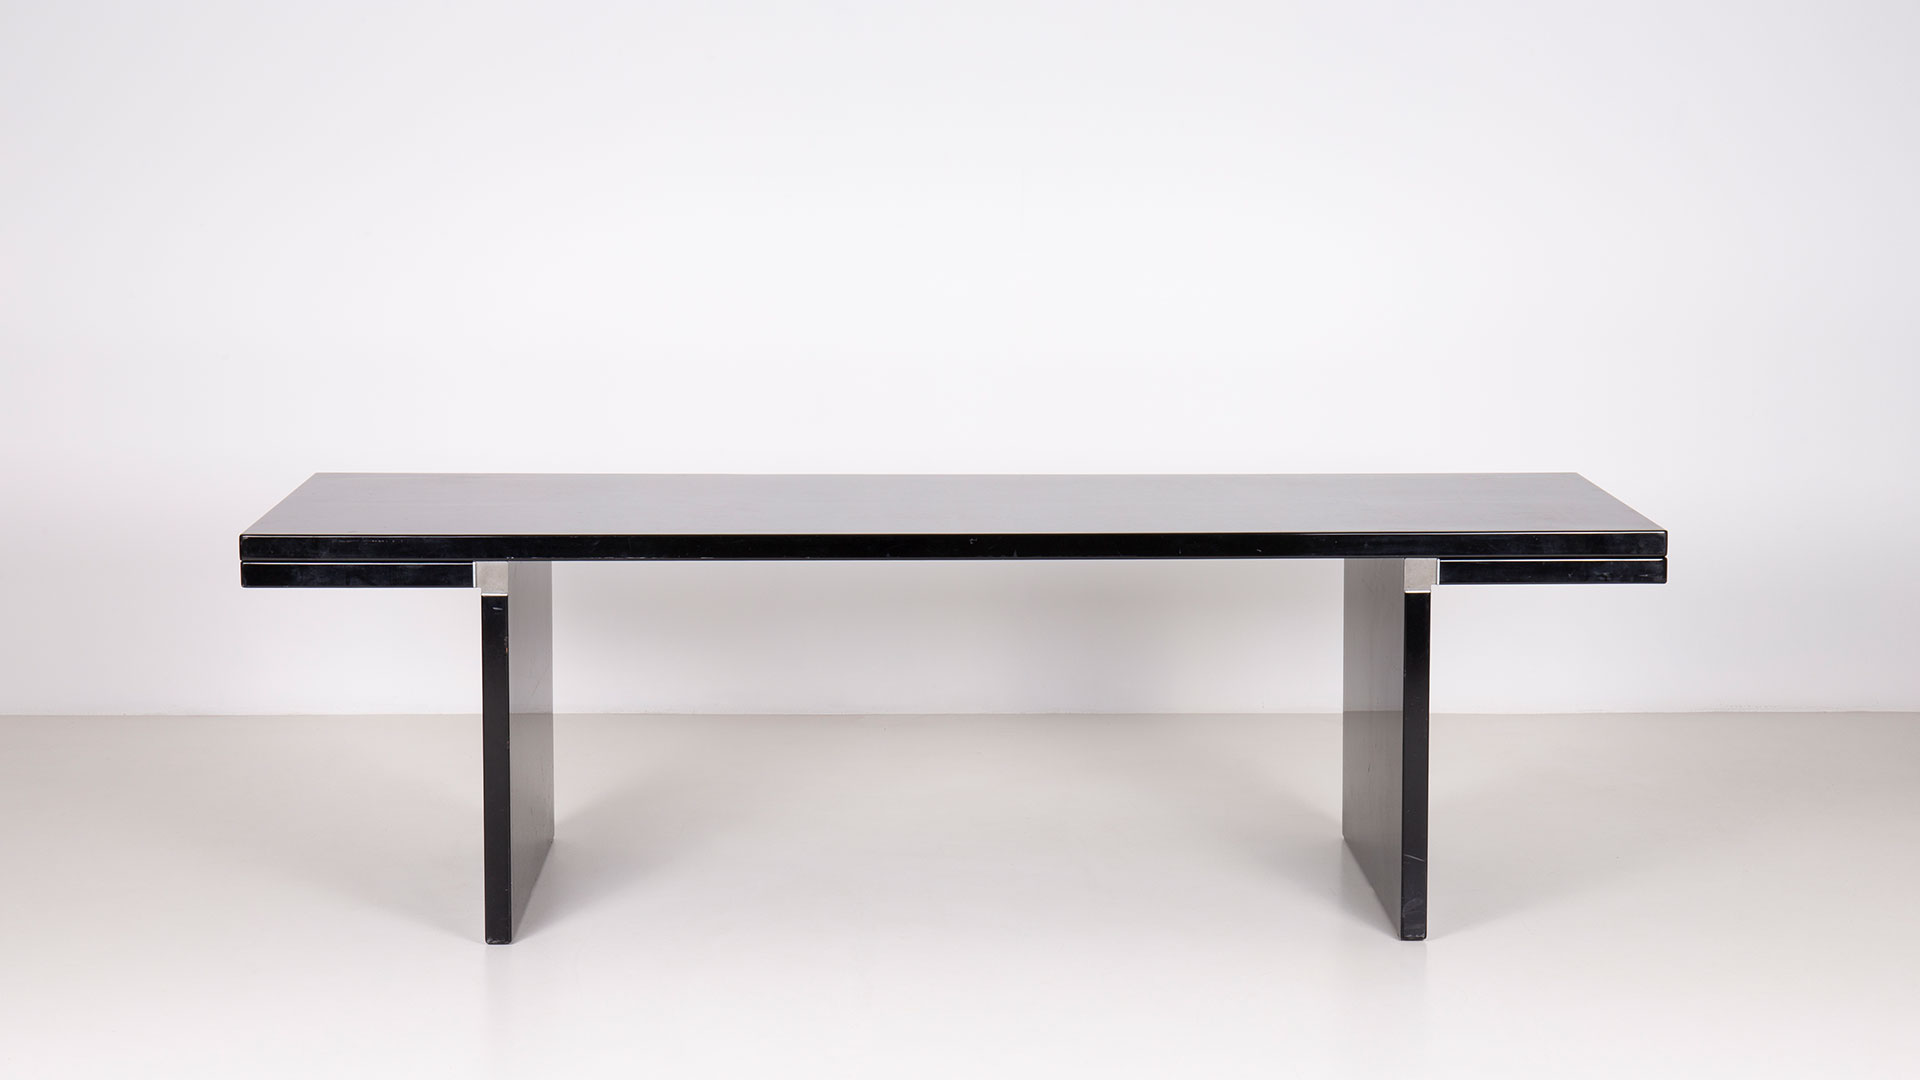 Orseolo table by Carlo Scarpa | Paradisoterrestre